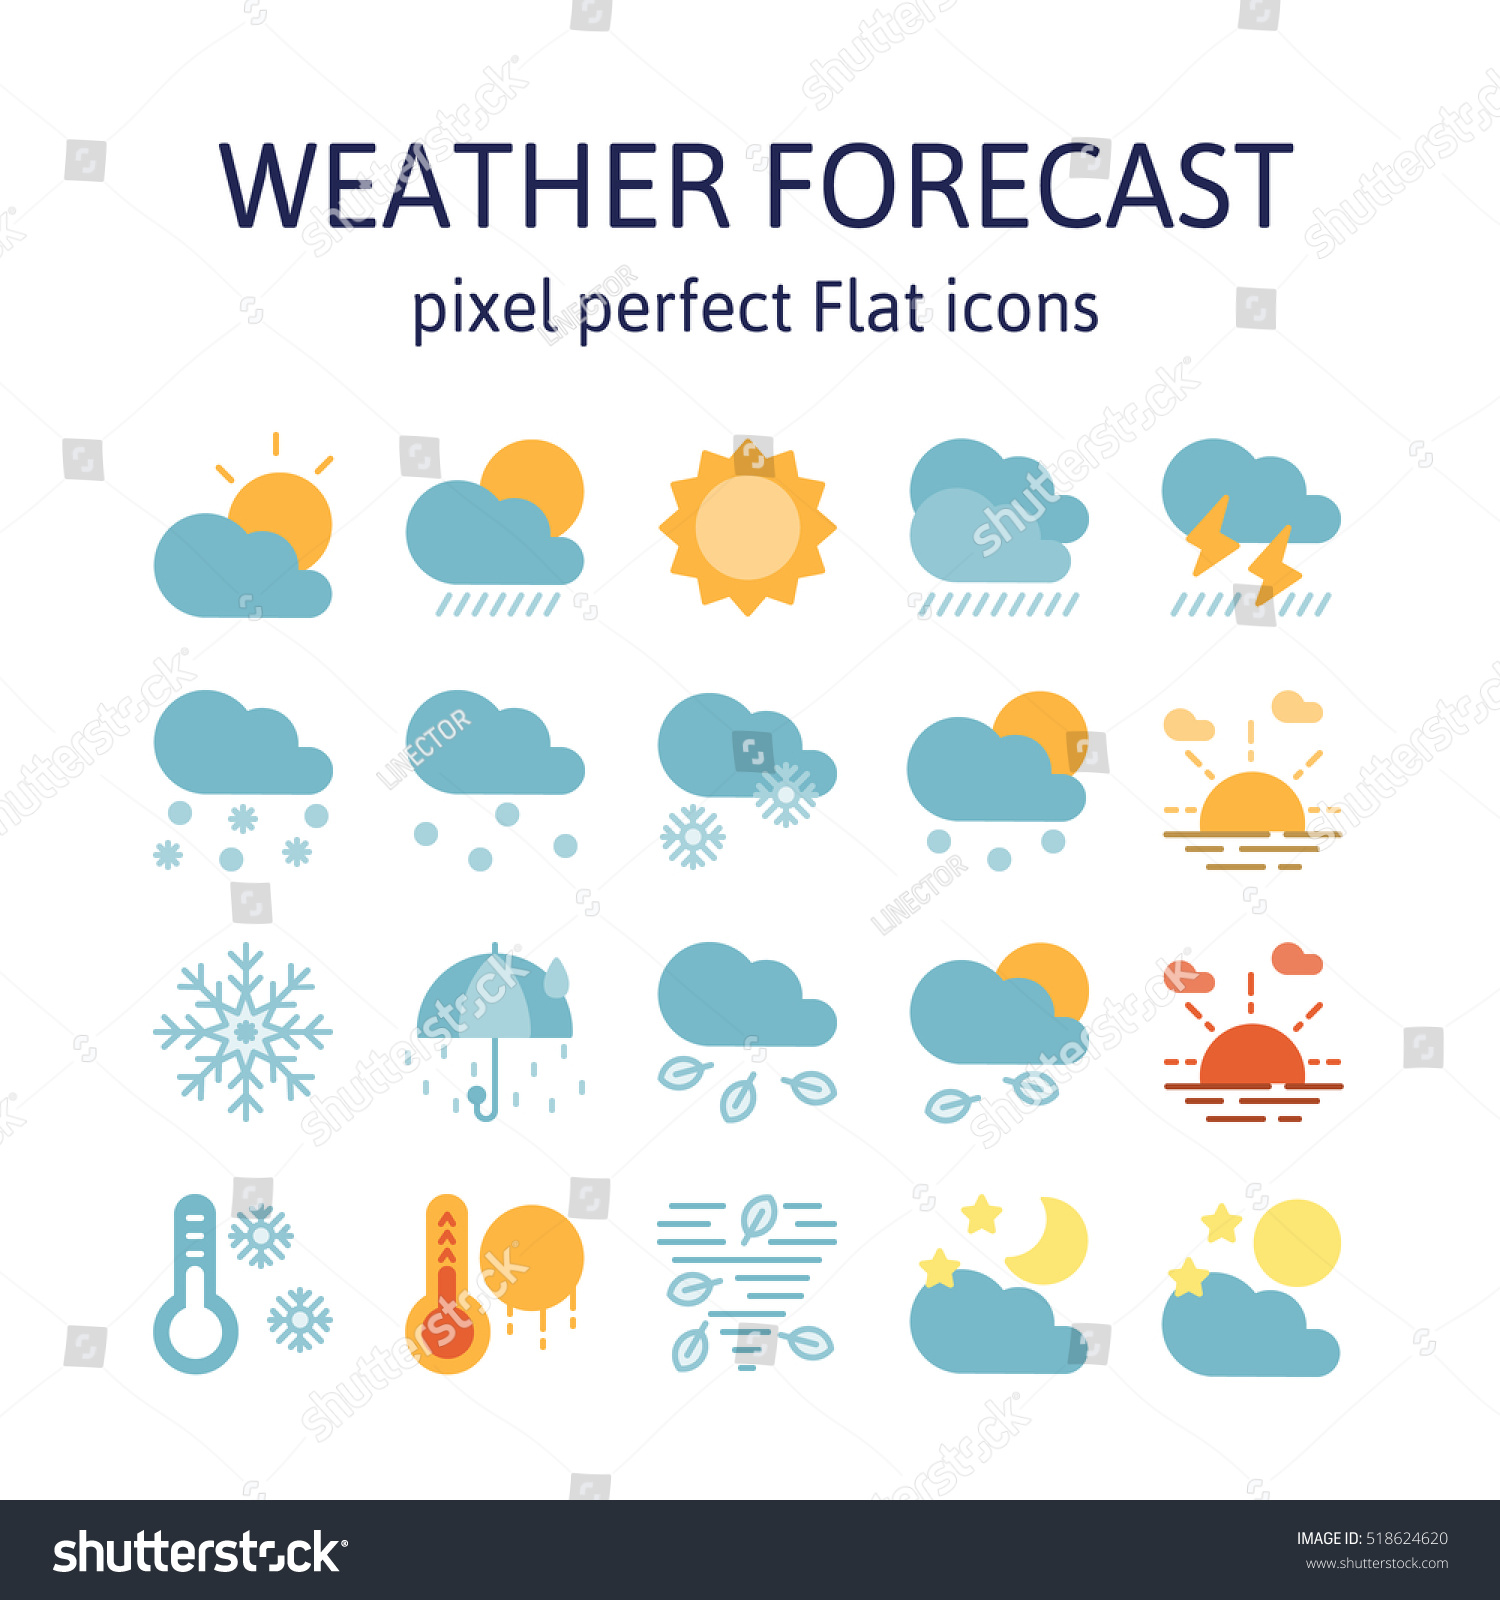 Weather Forecast Flat Icons Pictogram Symbol Stock Vector 518624620